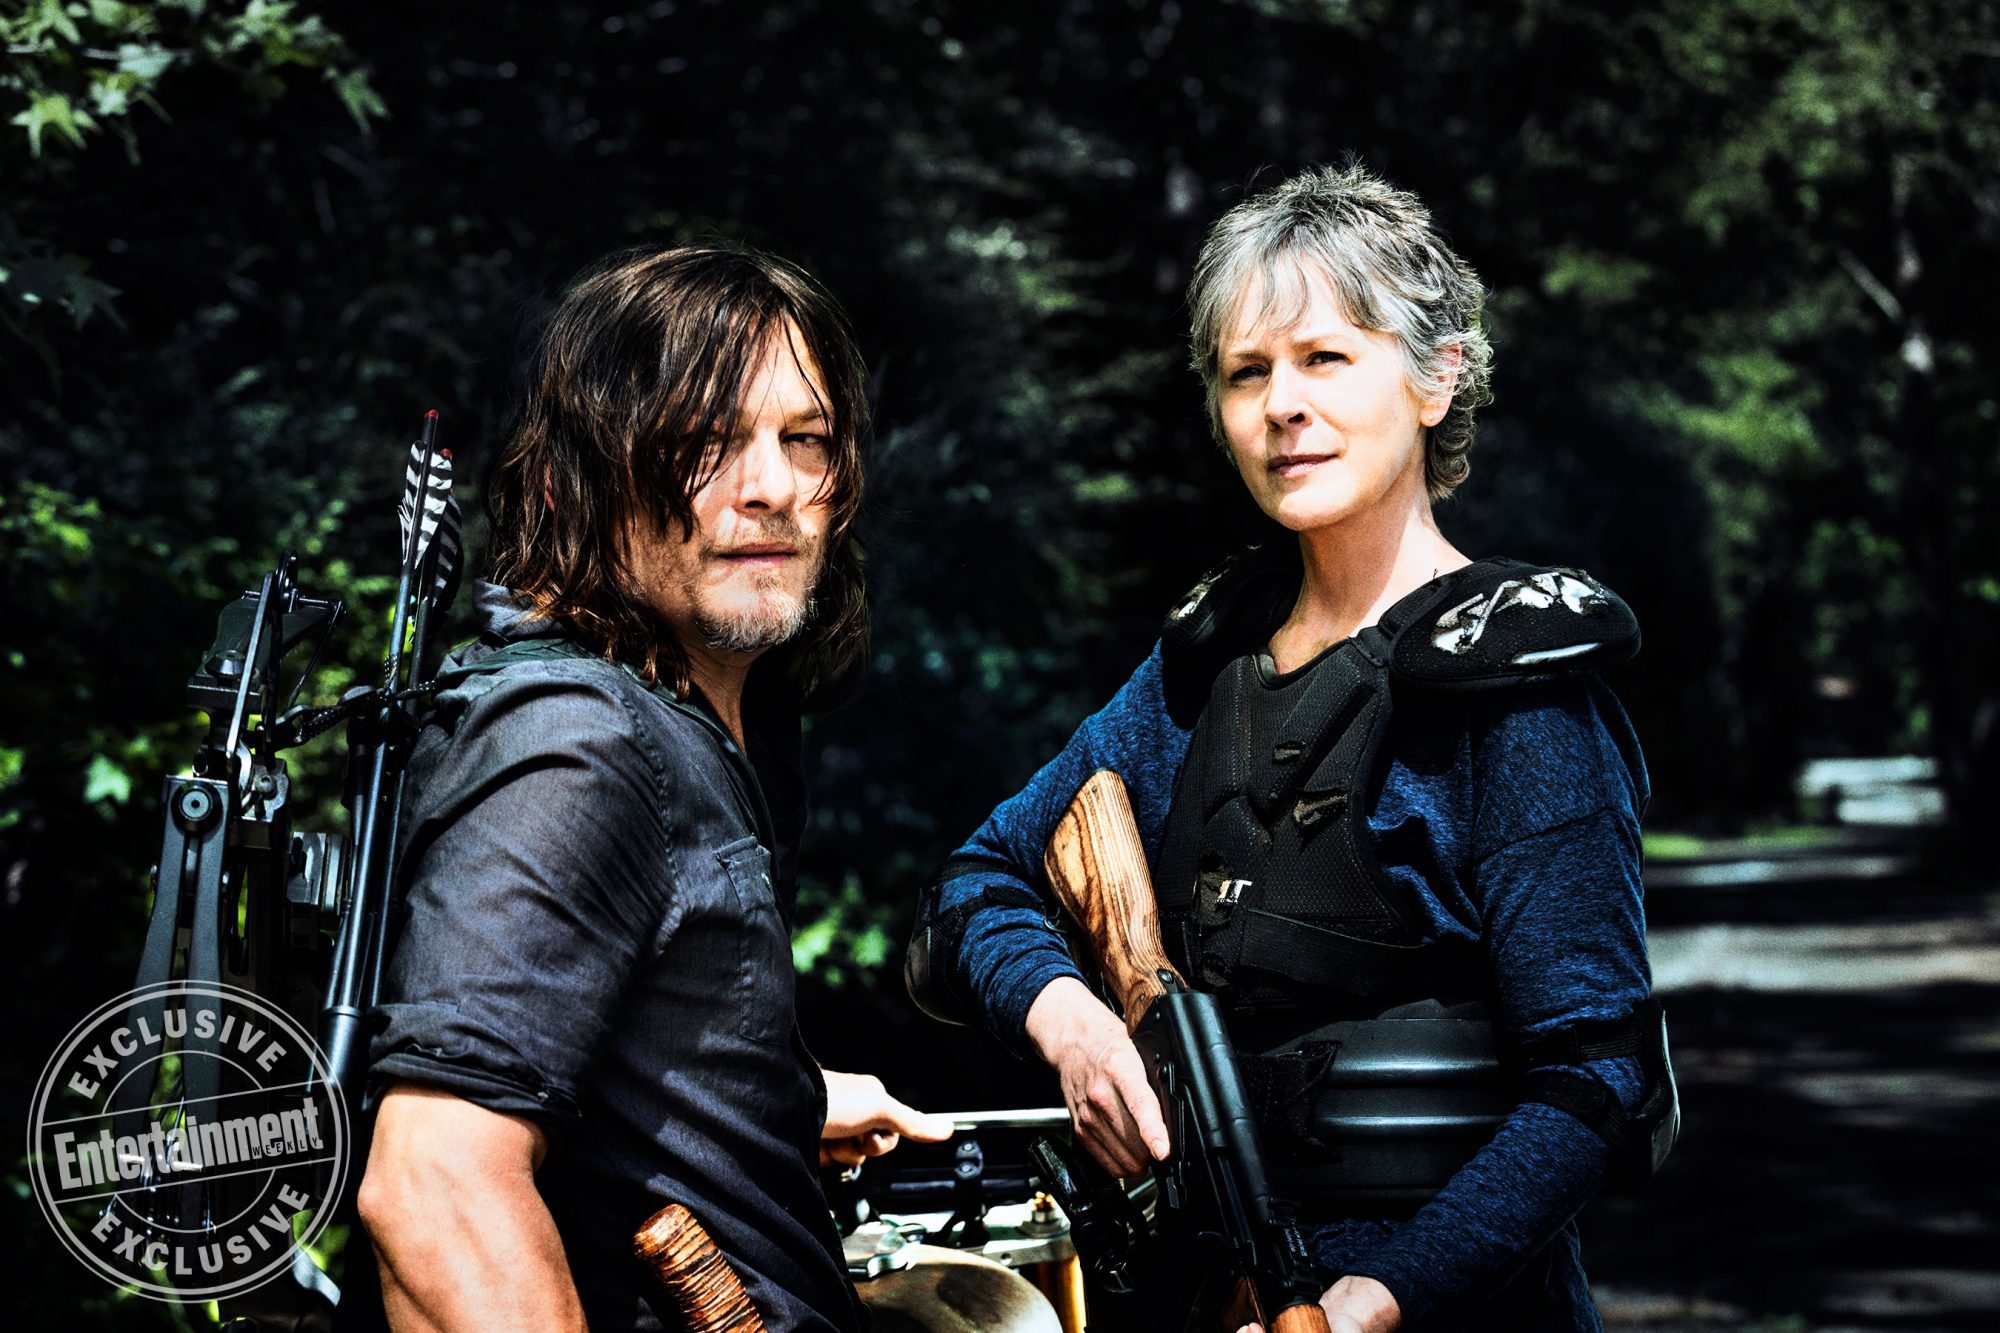 Norman-Reedus-as-Daryl-Dixon,-Melissa-McBride-as-Carol-Peletier --The-Walking-Dead-_-Season-8,-Gallery---Photo-Credit-Alan-Clarke,-AMC_2